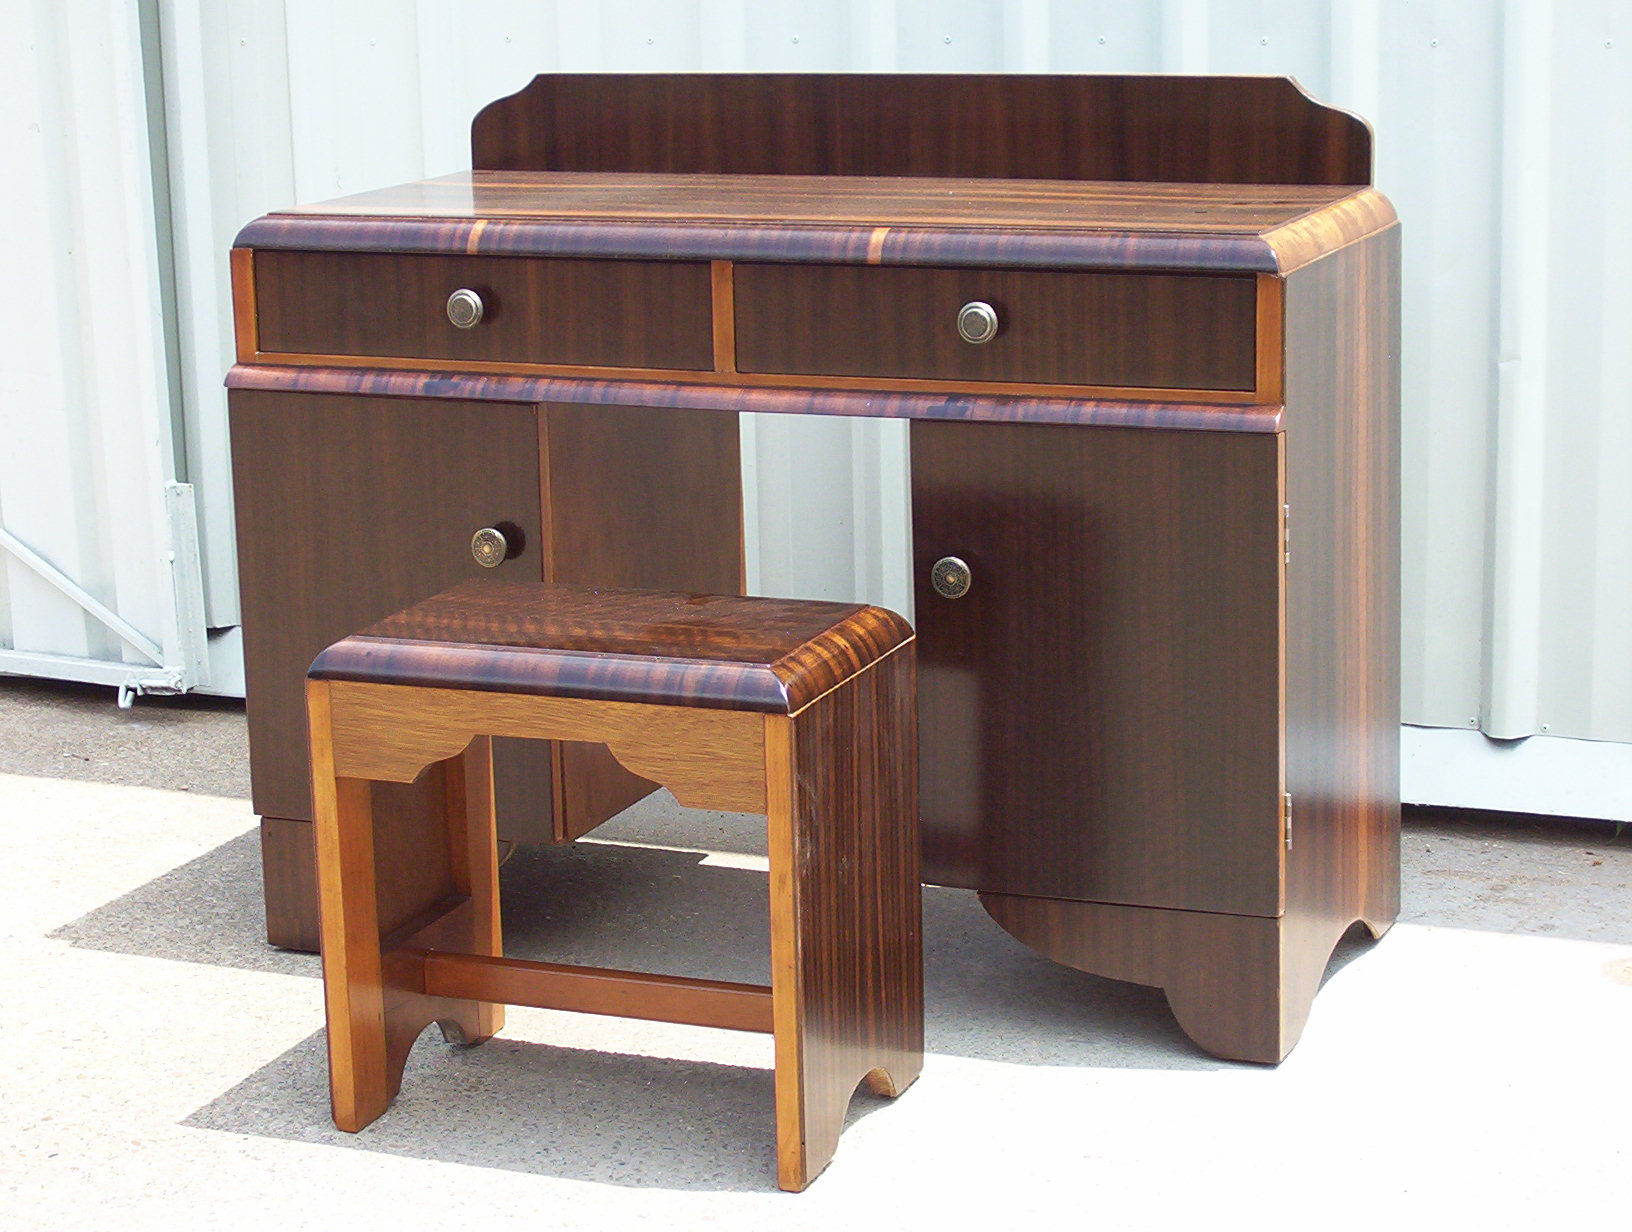 Qld_Walnut_Restored_Dressing_Table.JPG